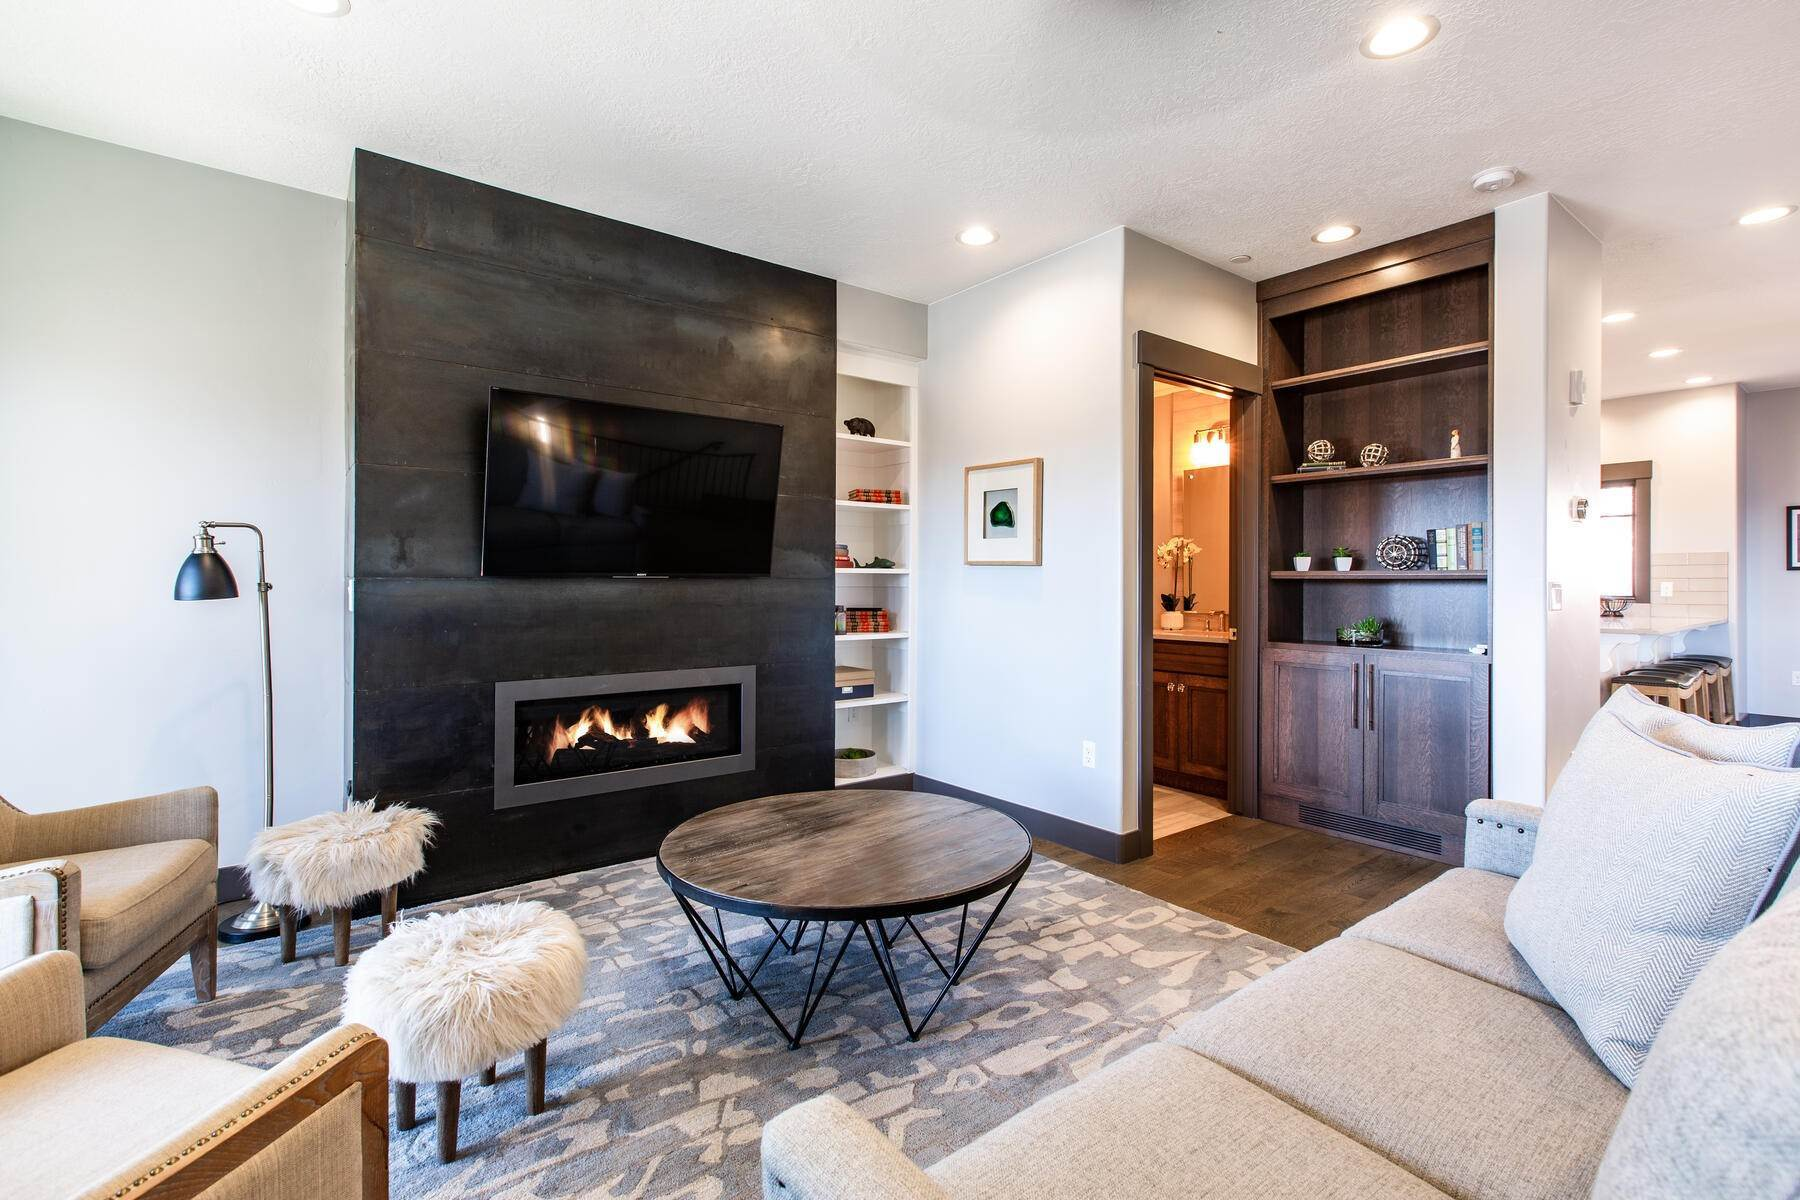 3. townhouses for Sale at Walk to Skiing from this Turn-Key Canyons Village Townhome 4221 Fairway Lane, D-4 Park City, Utah 84098 United States